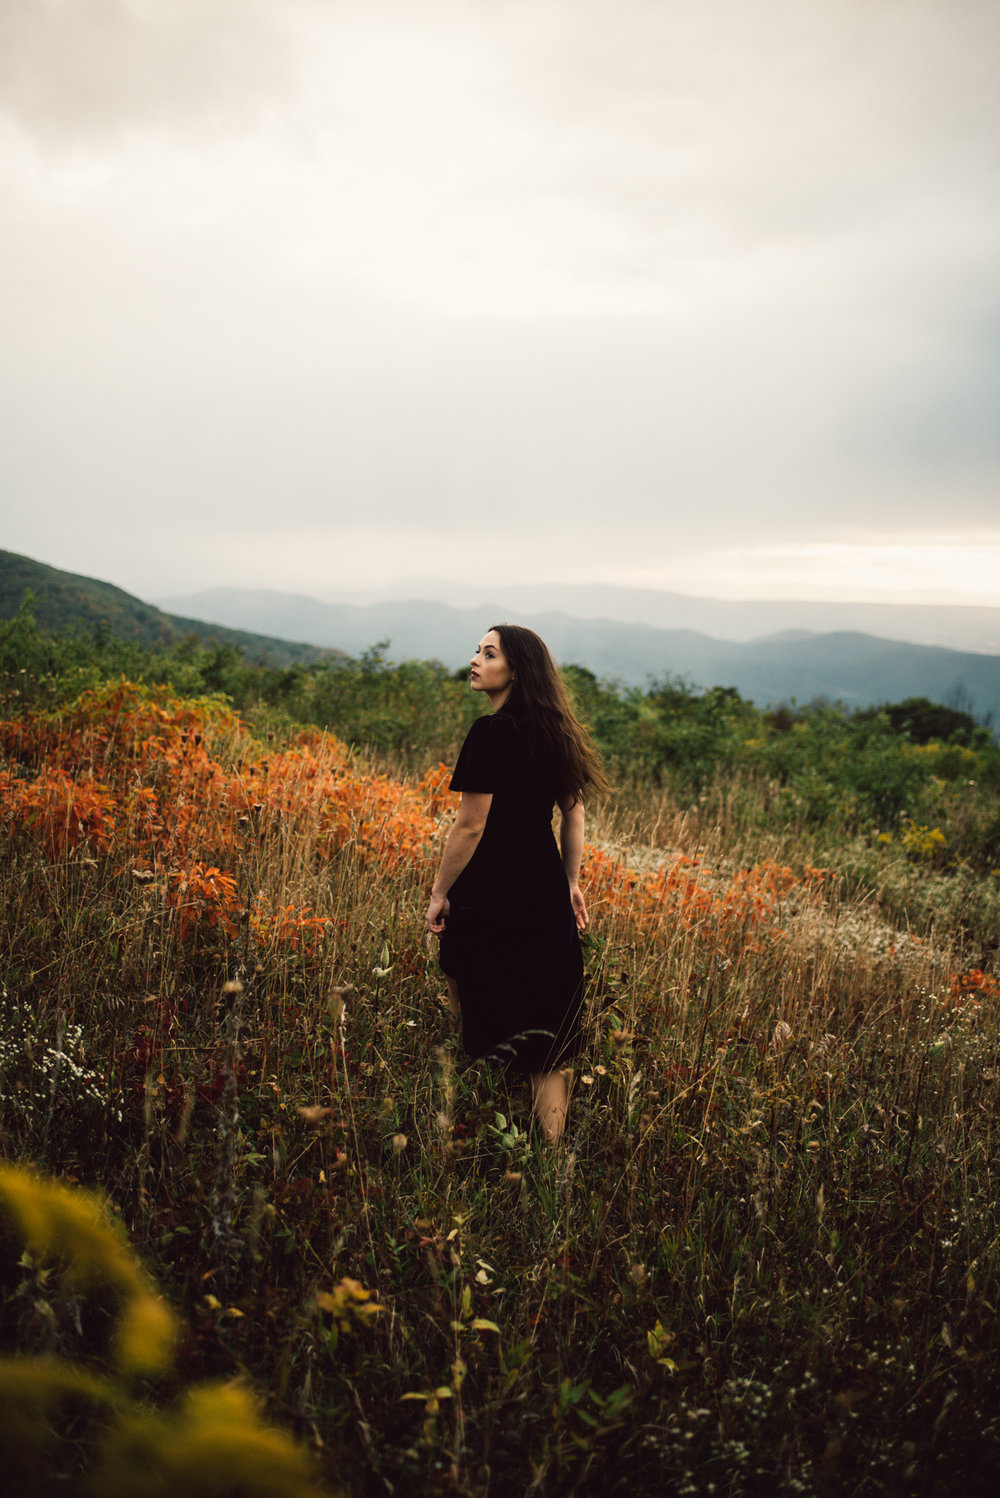 Megan_Shenandoah_National_Park_Windy_Romantic_Portraits_144.JPG